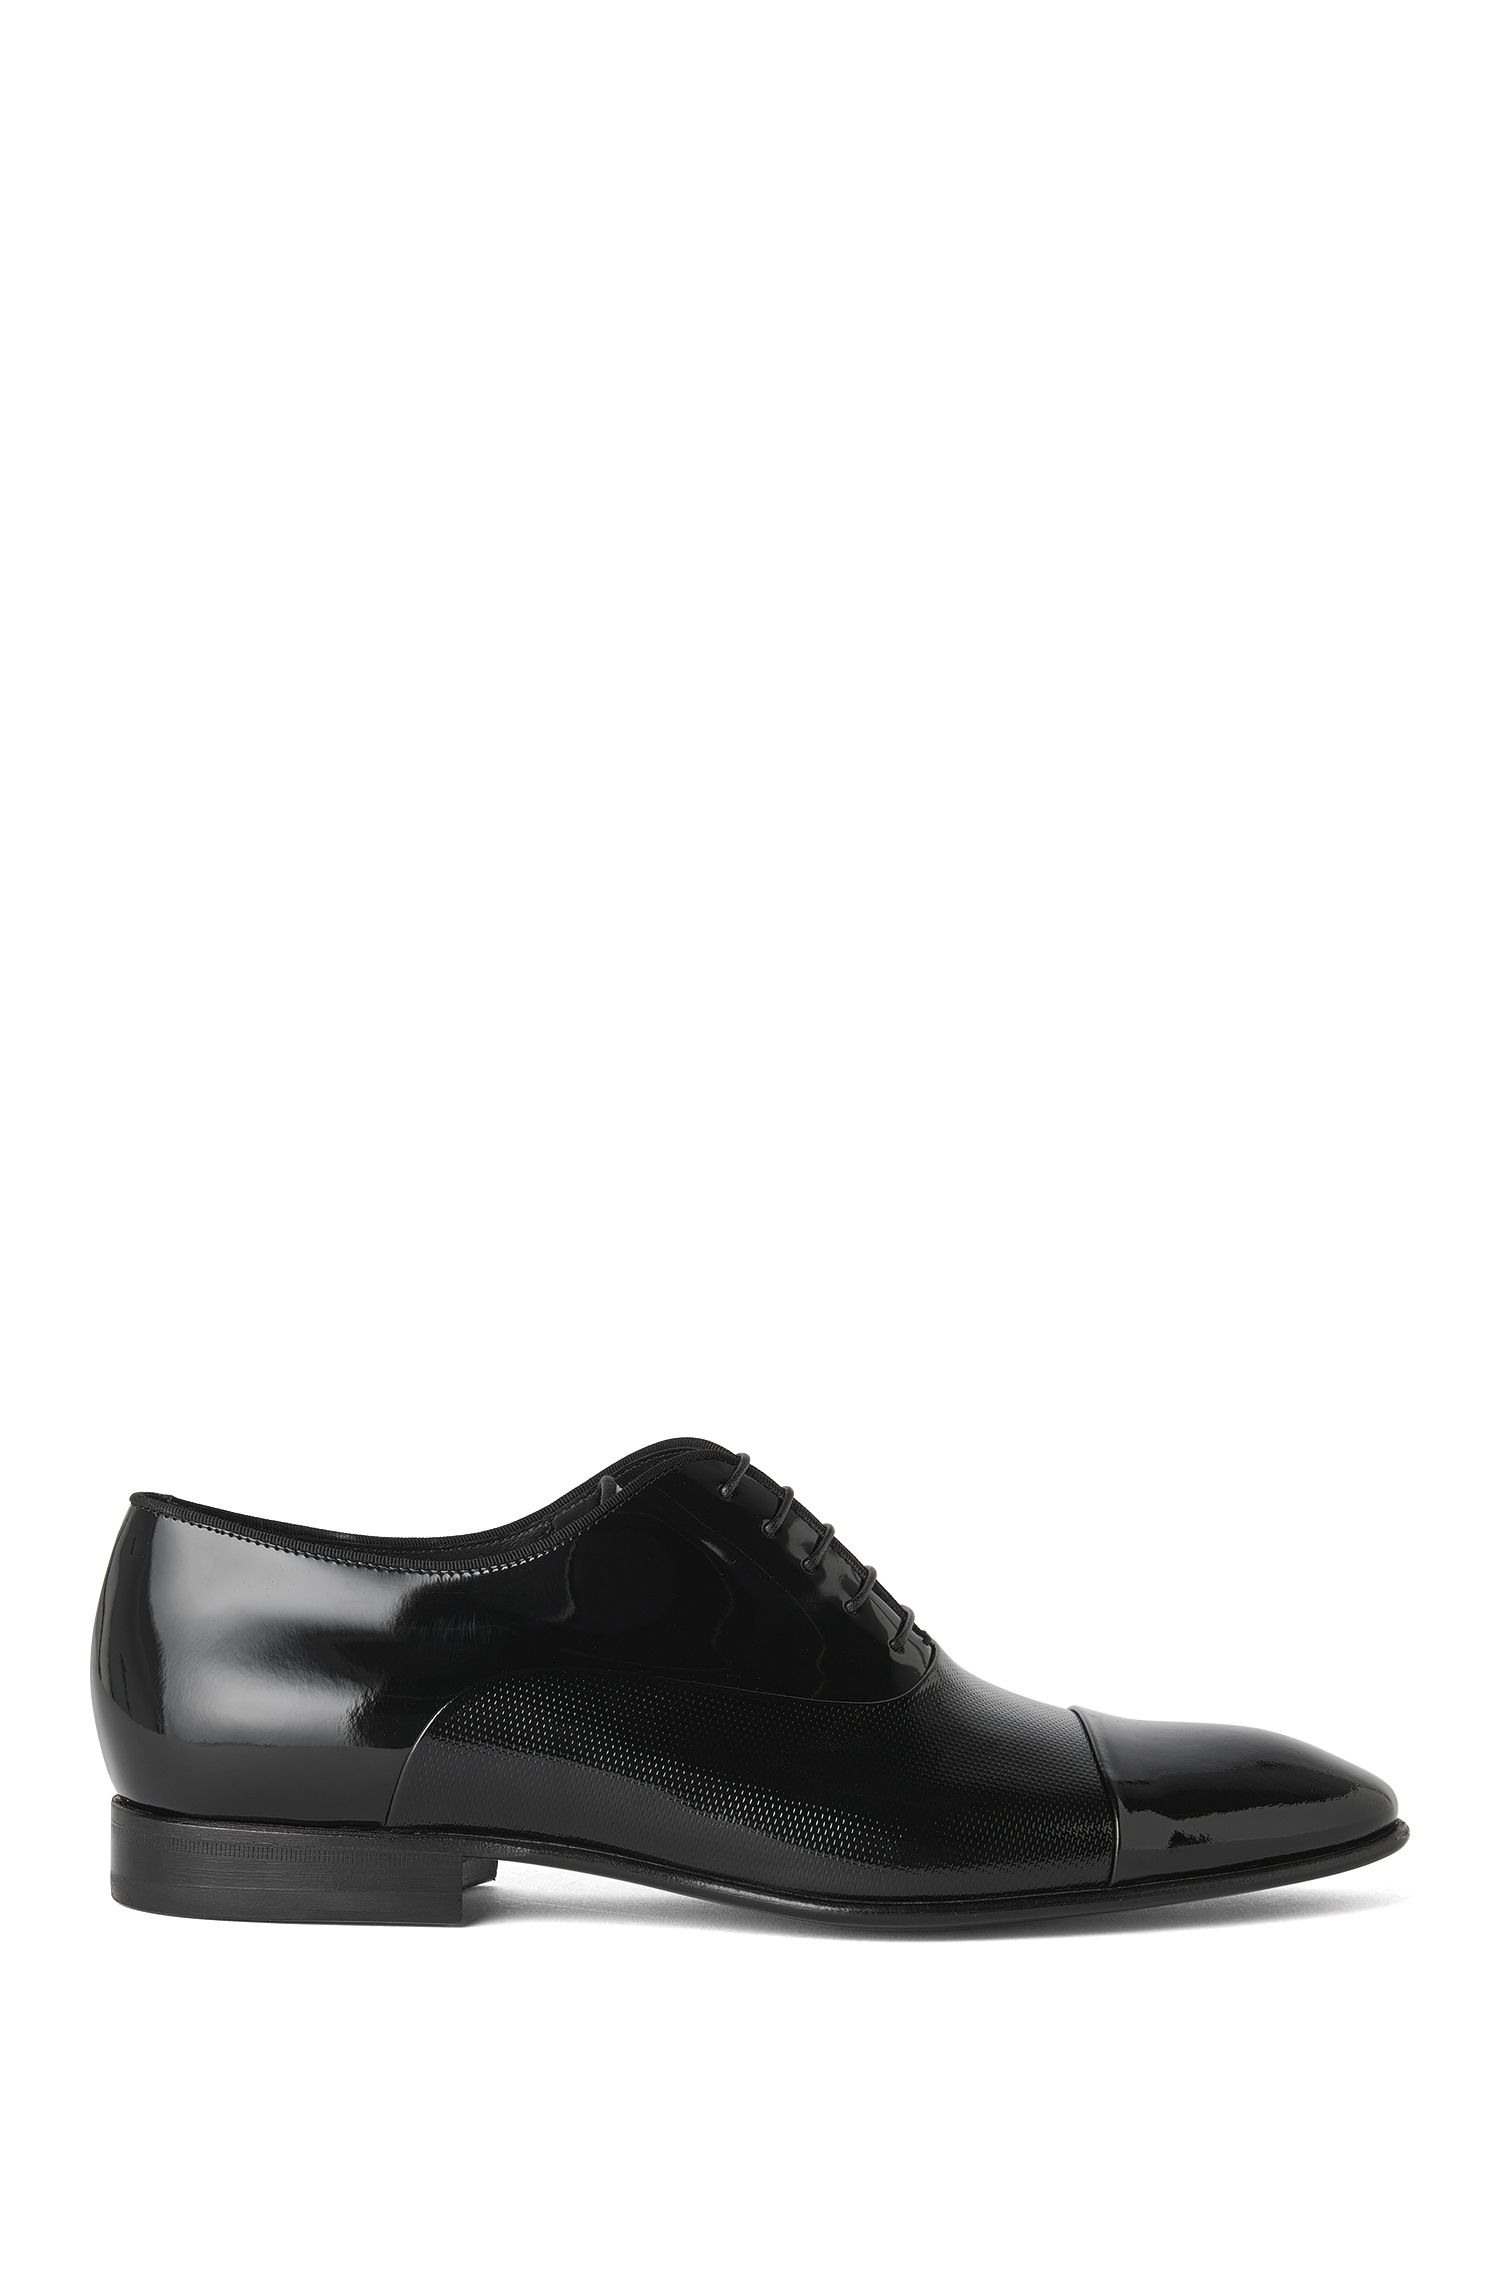 Scarpe Oxford in pelli miste